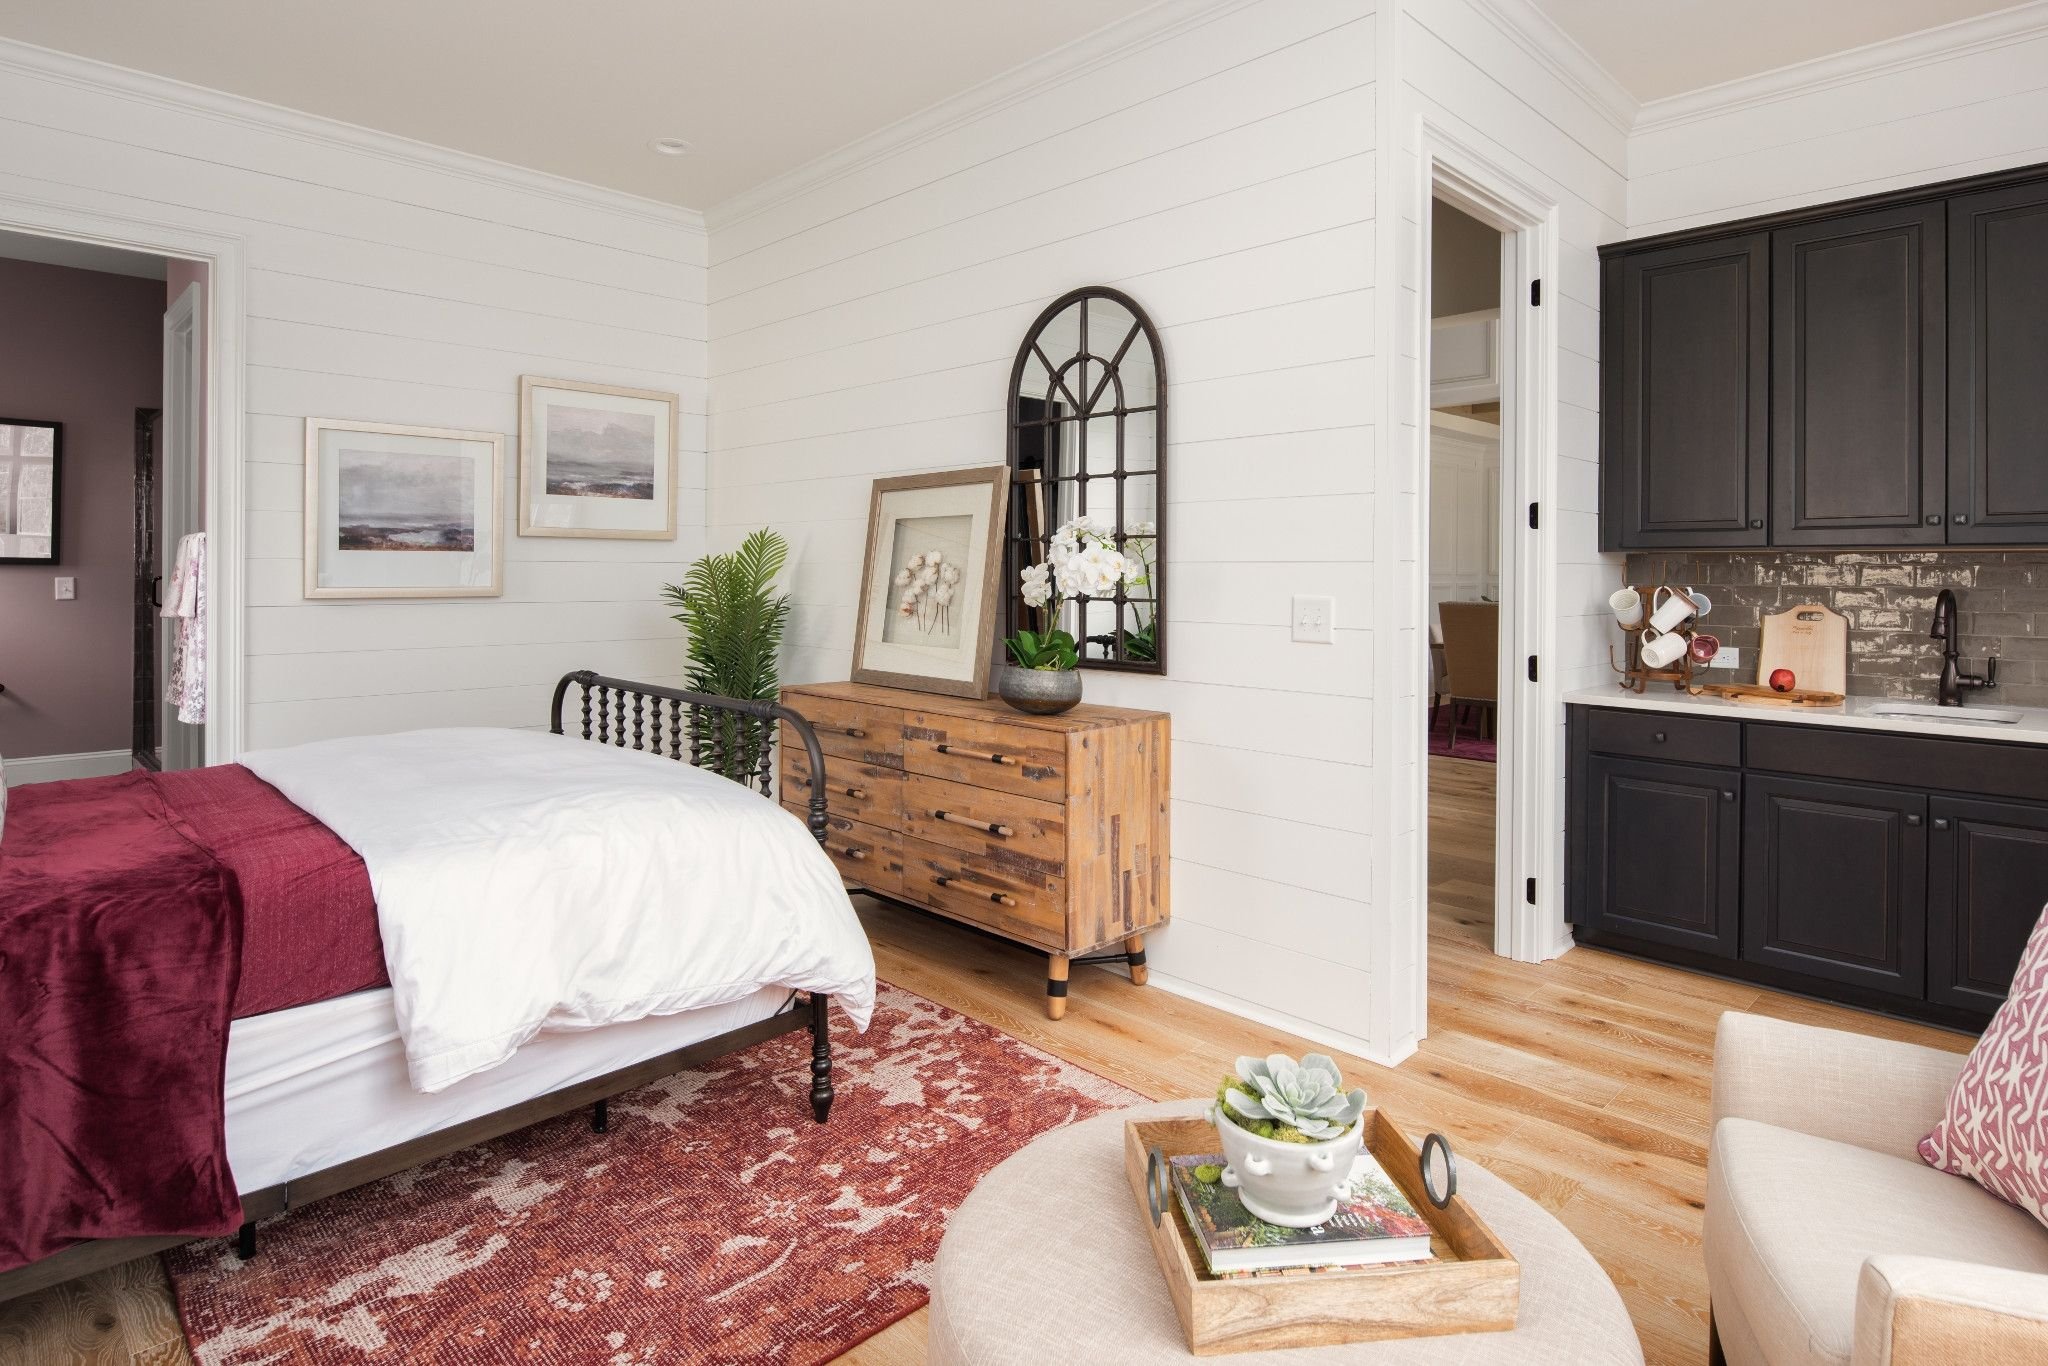 Bedroom featured in the Hadley By Shea Homes in Charlotte, NC